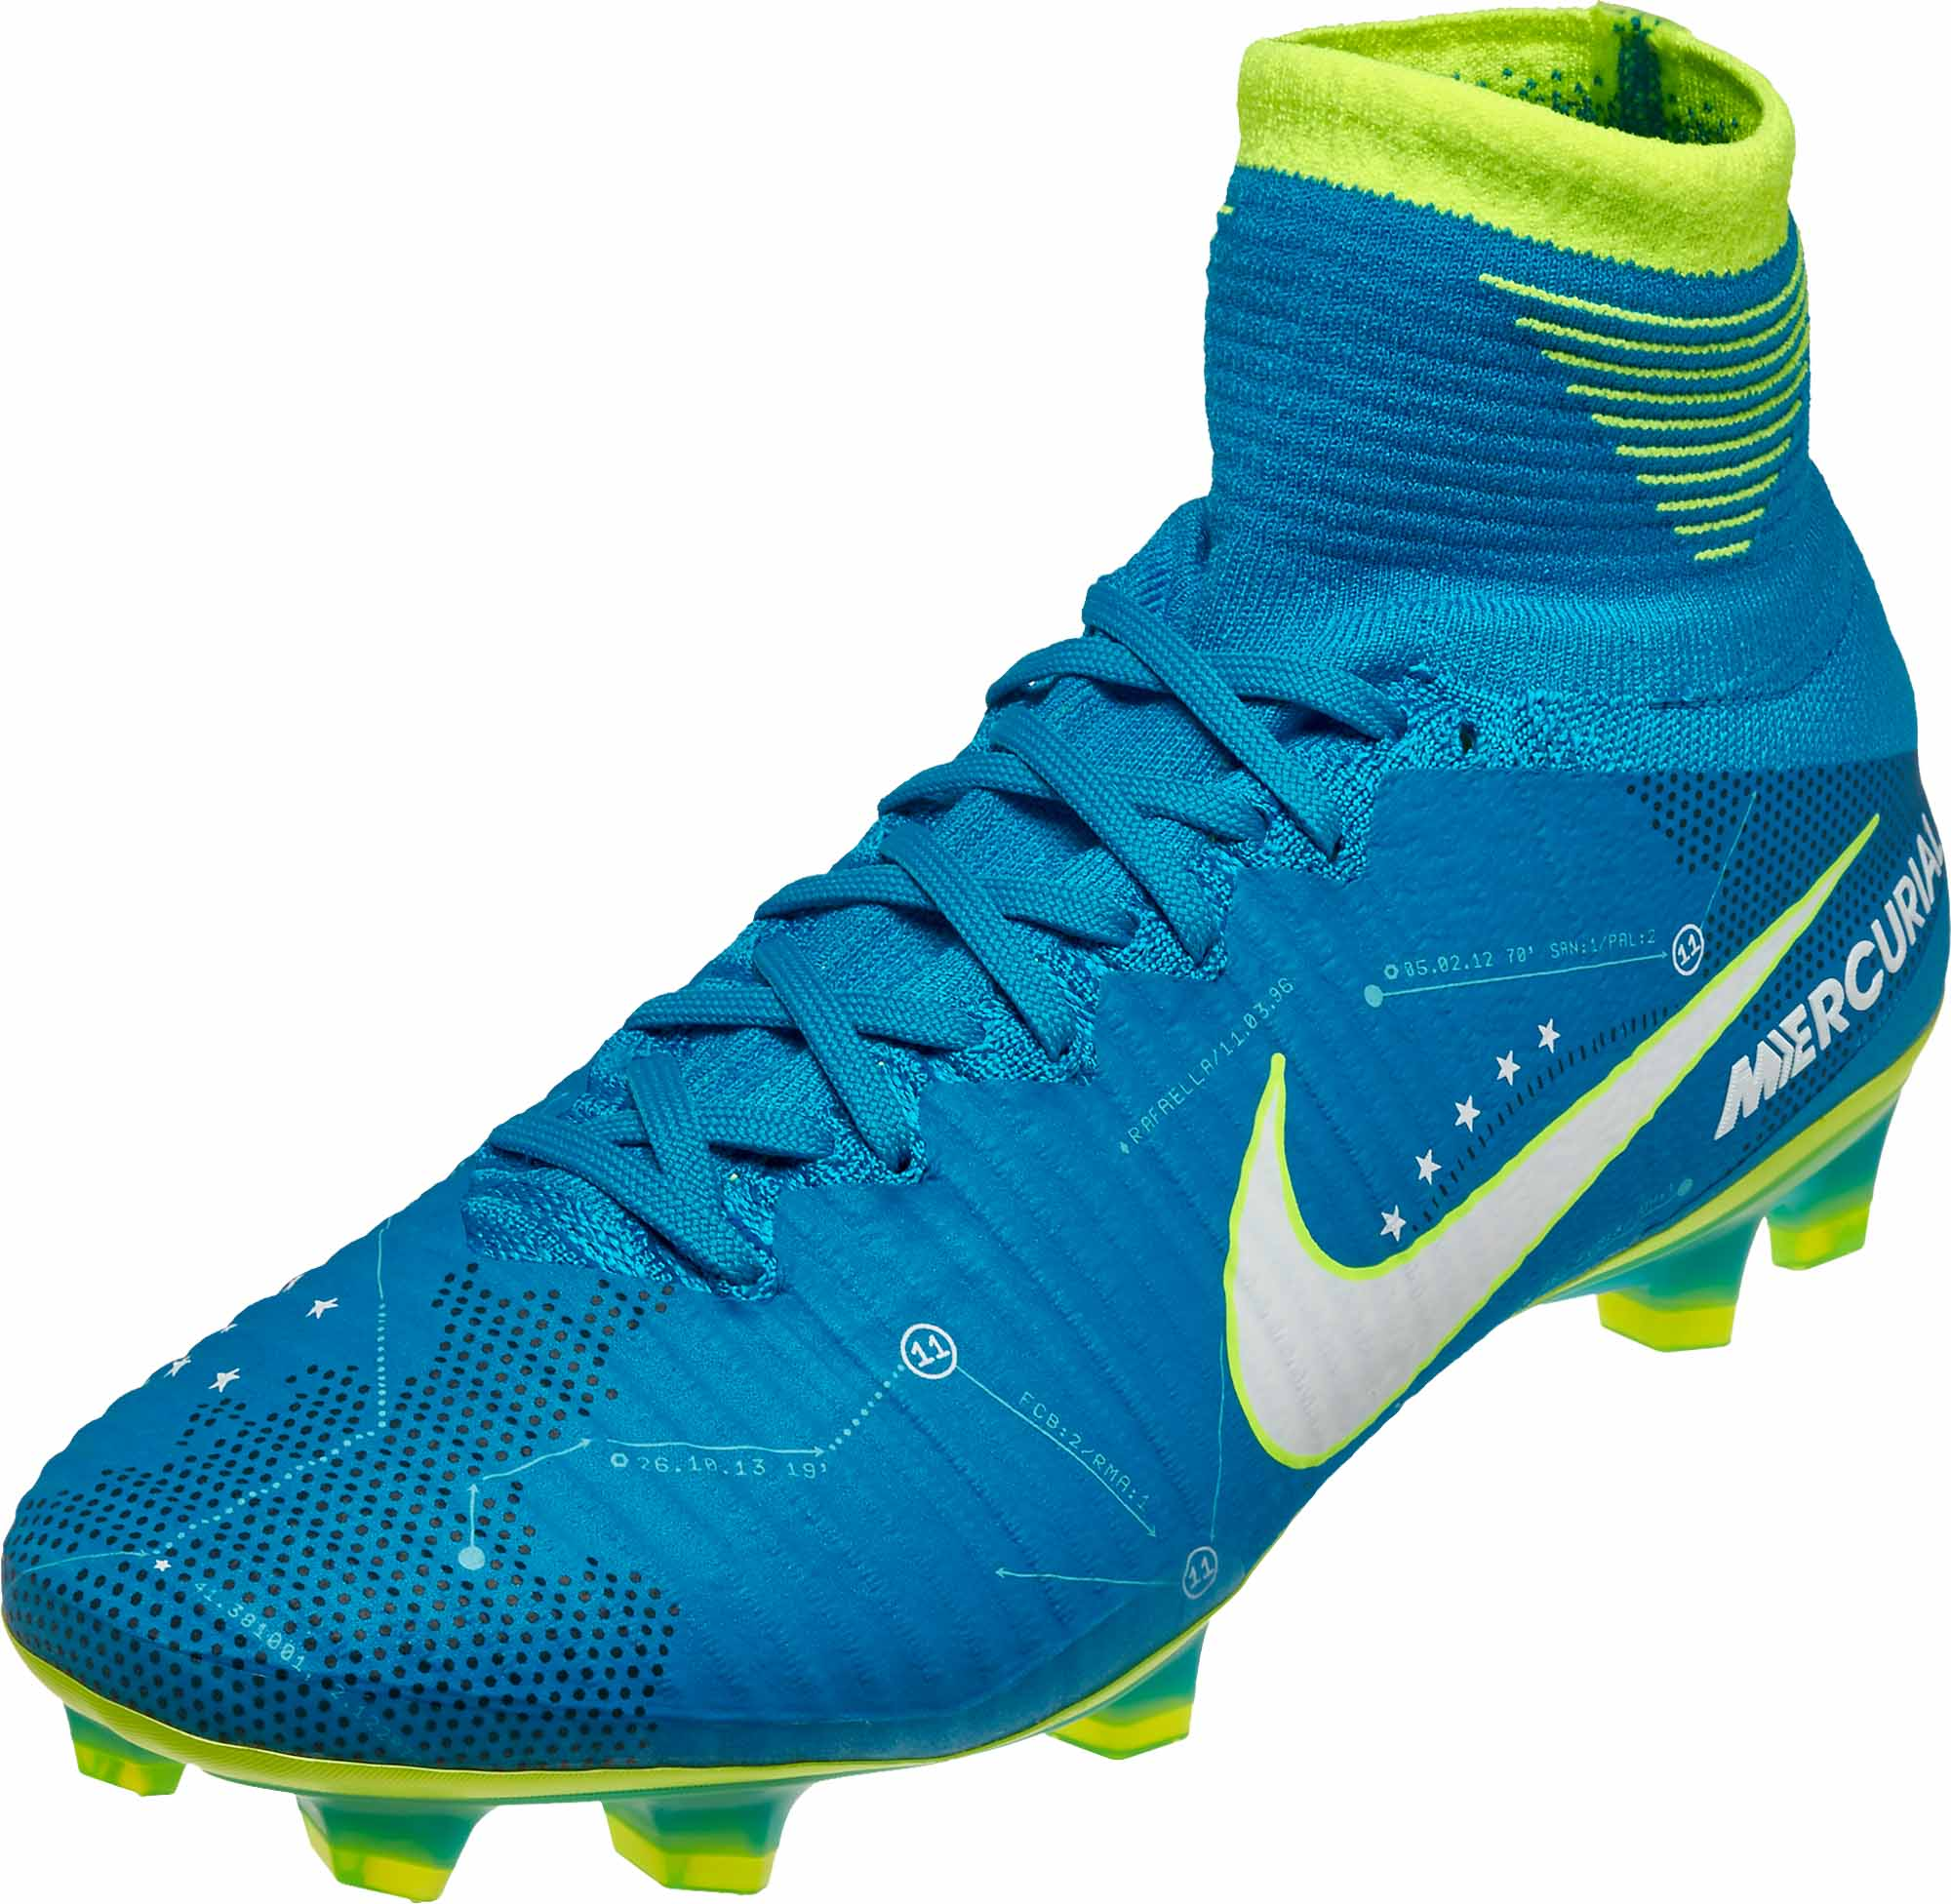 Home / Shop By Brand / Nike / Nike Soccer Shoes ...